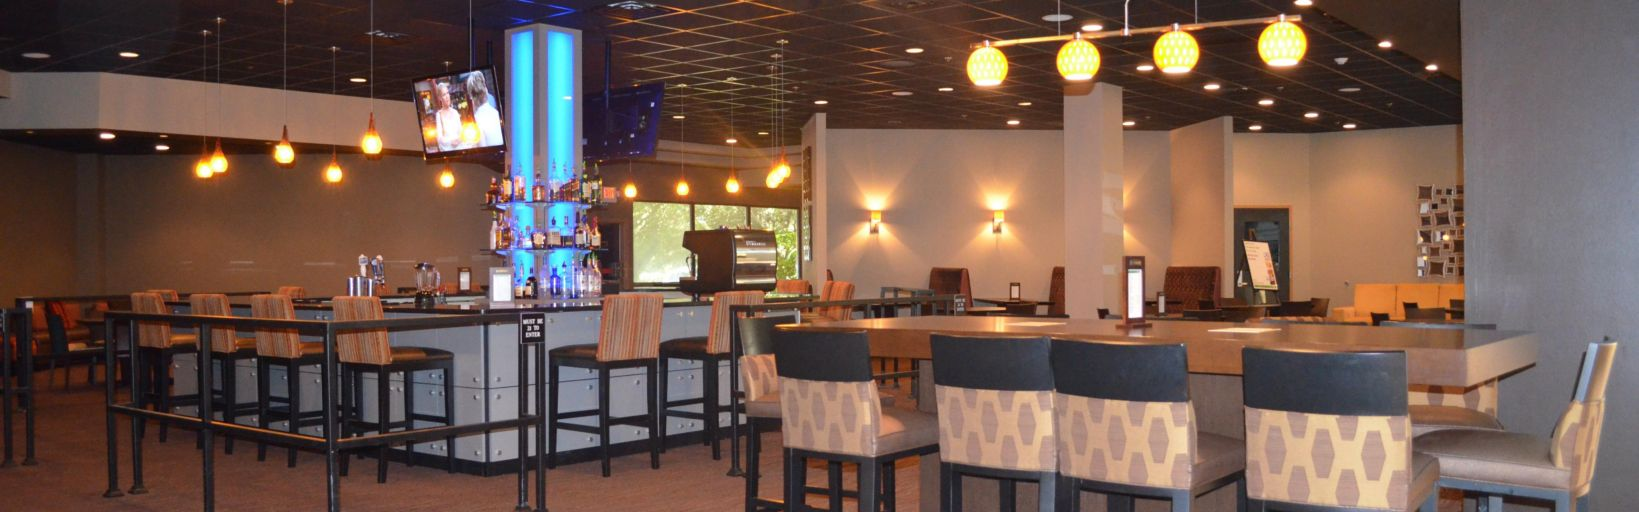 bar design in dubai alegra, restaurants near holiday inn evansville airport, Design ideen